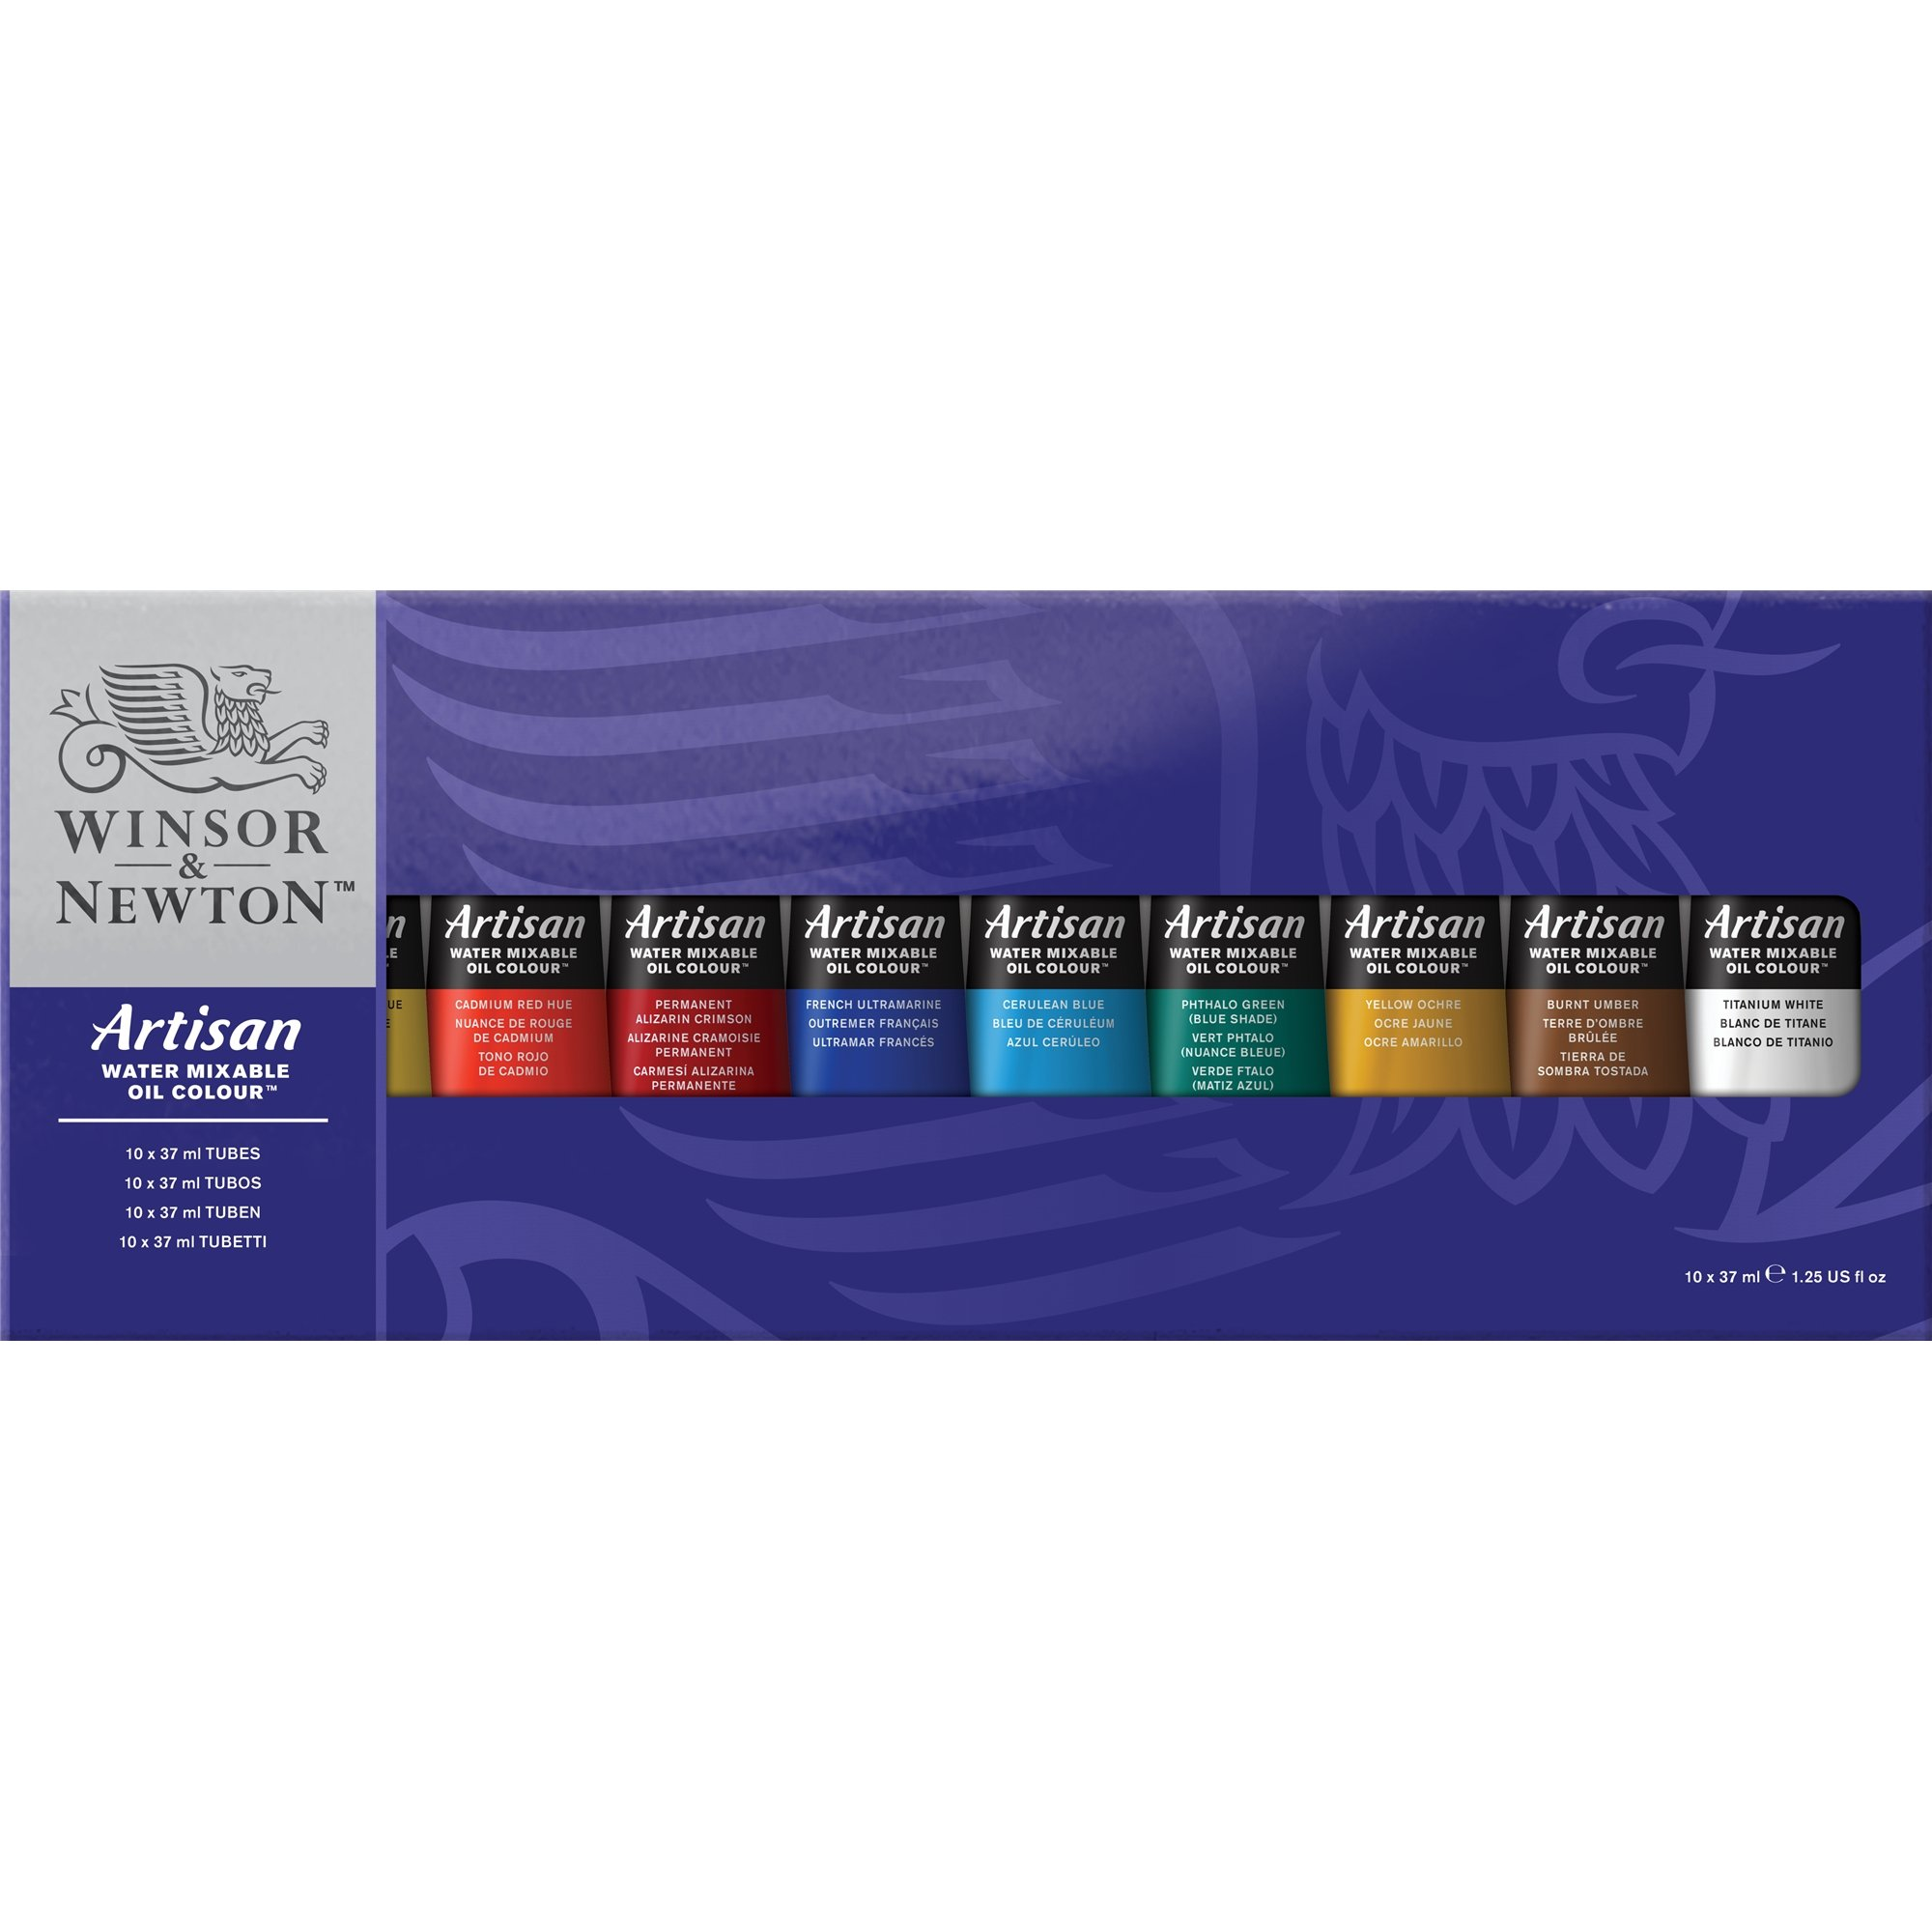 Winsor & Newton Artisan Water Mixable Oil Colour, 37ml, Assorted by Winsor & Newton